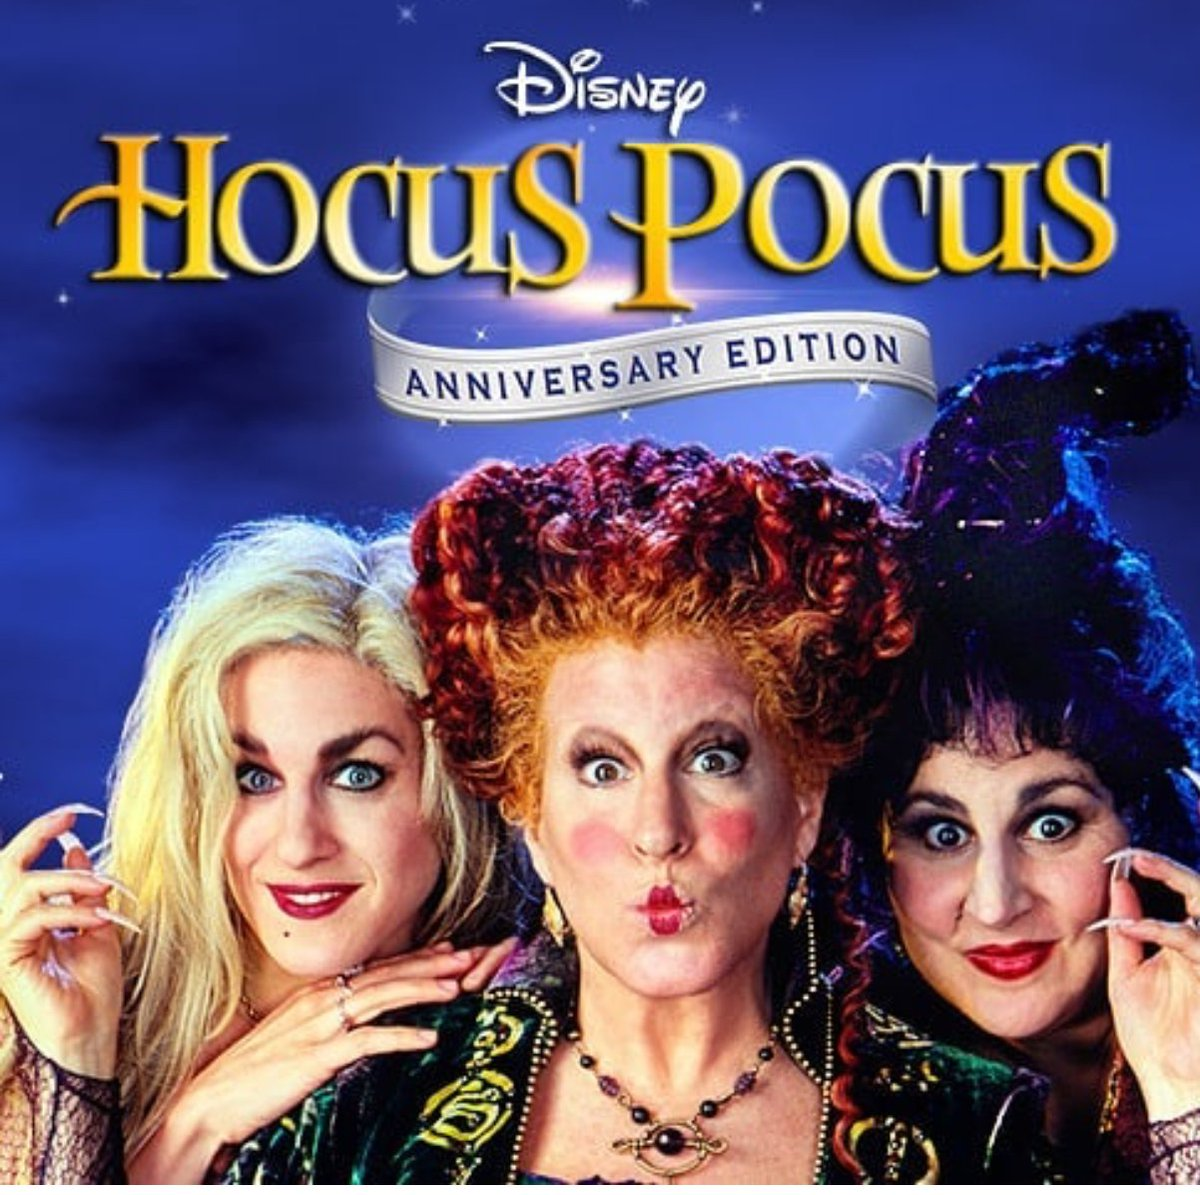 What's your favorite #halloween movie? Mine is #HocusPocus #halloween #fall NiOvcO846L